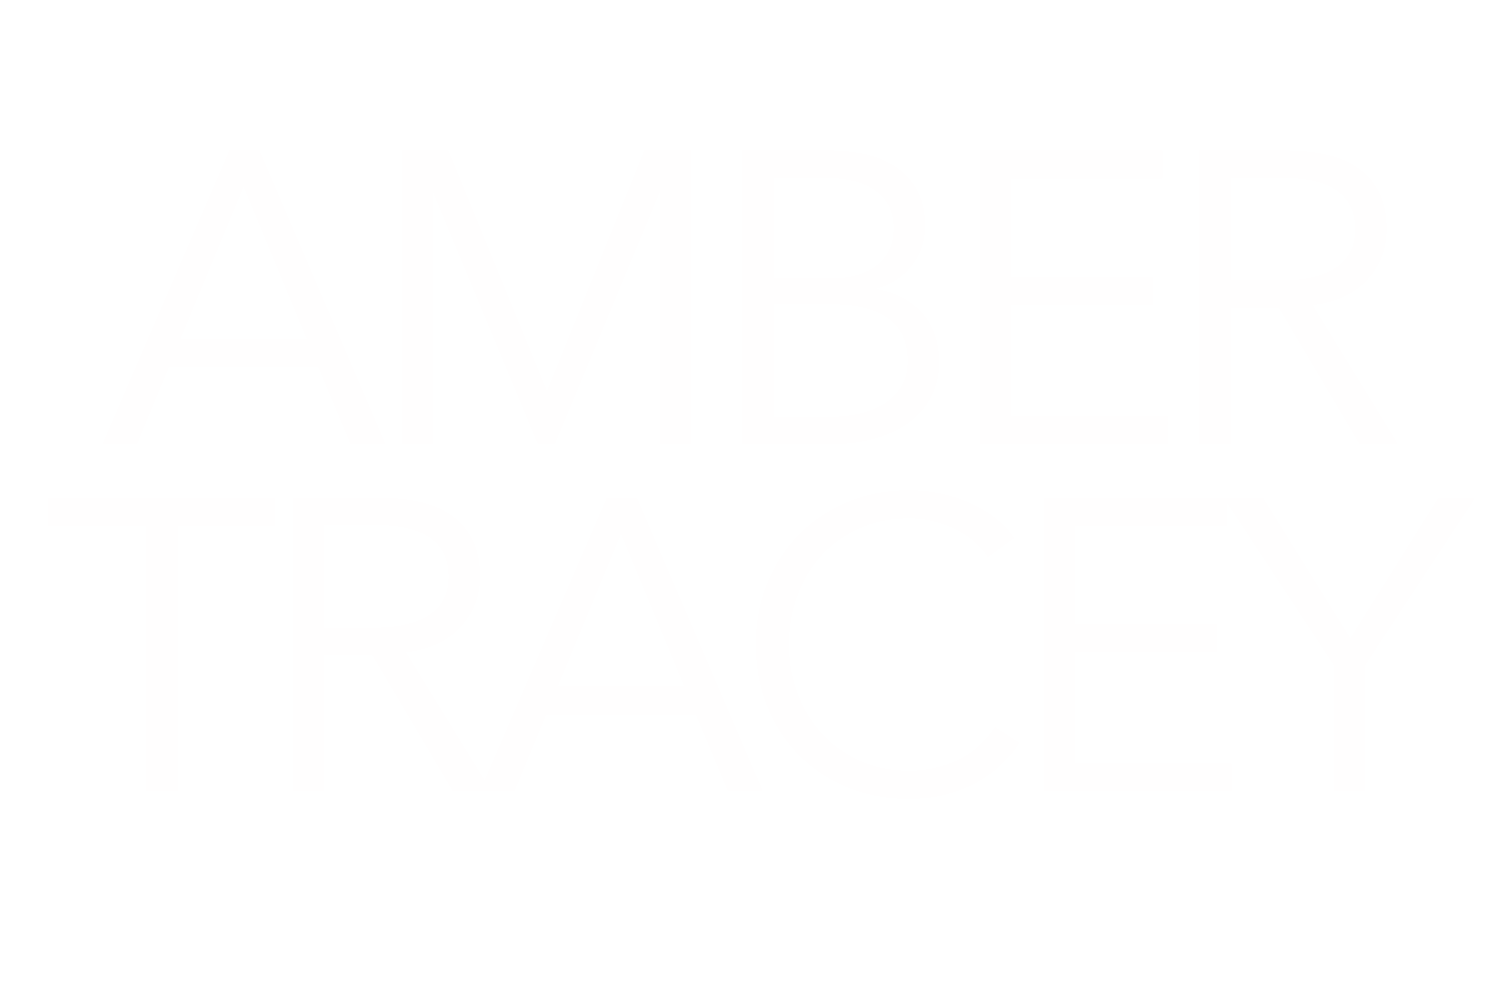 Amber & Tracey